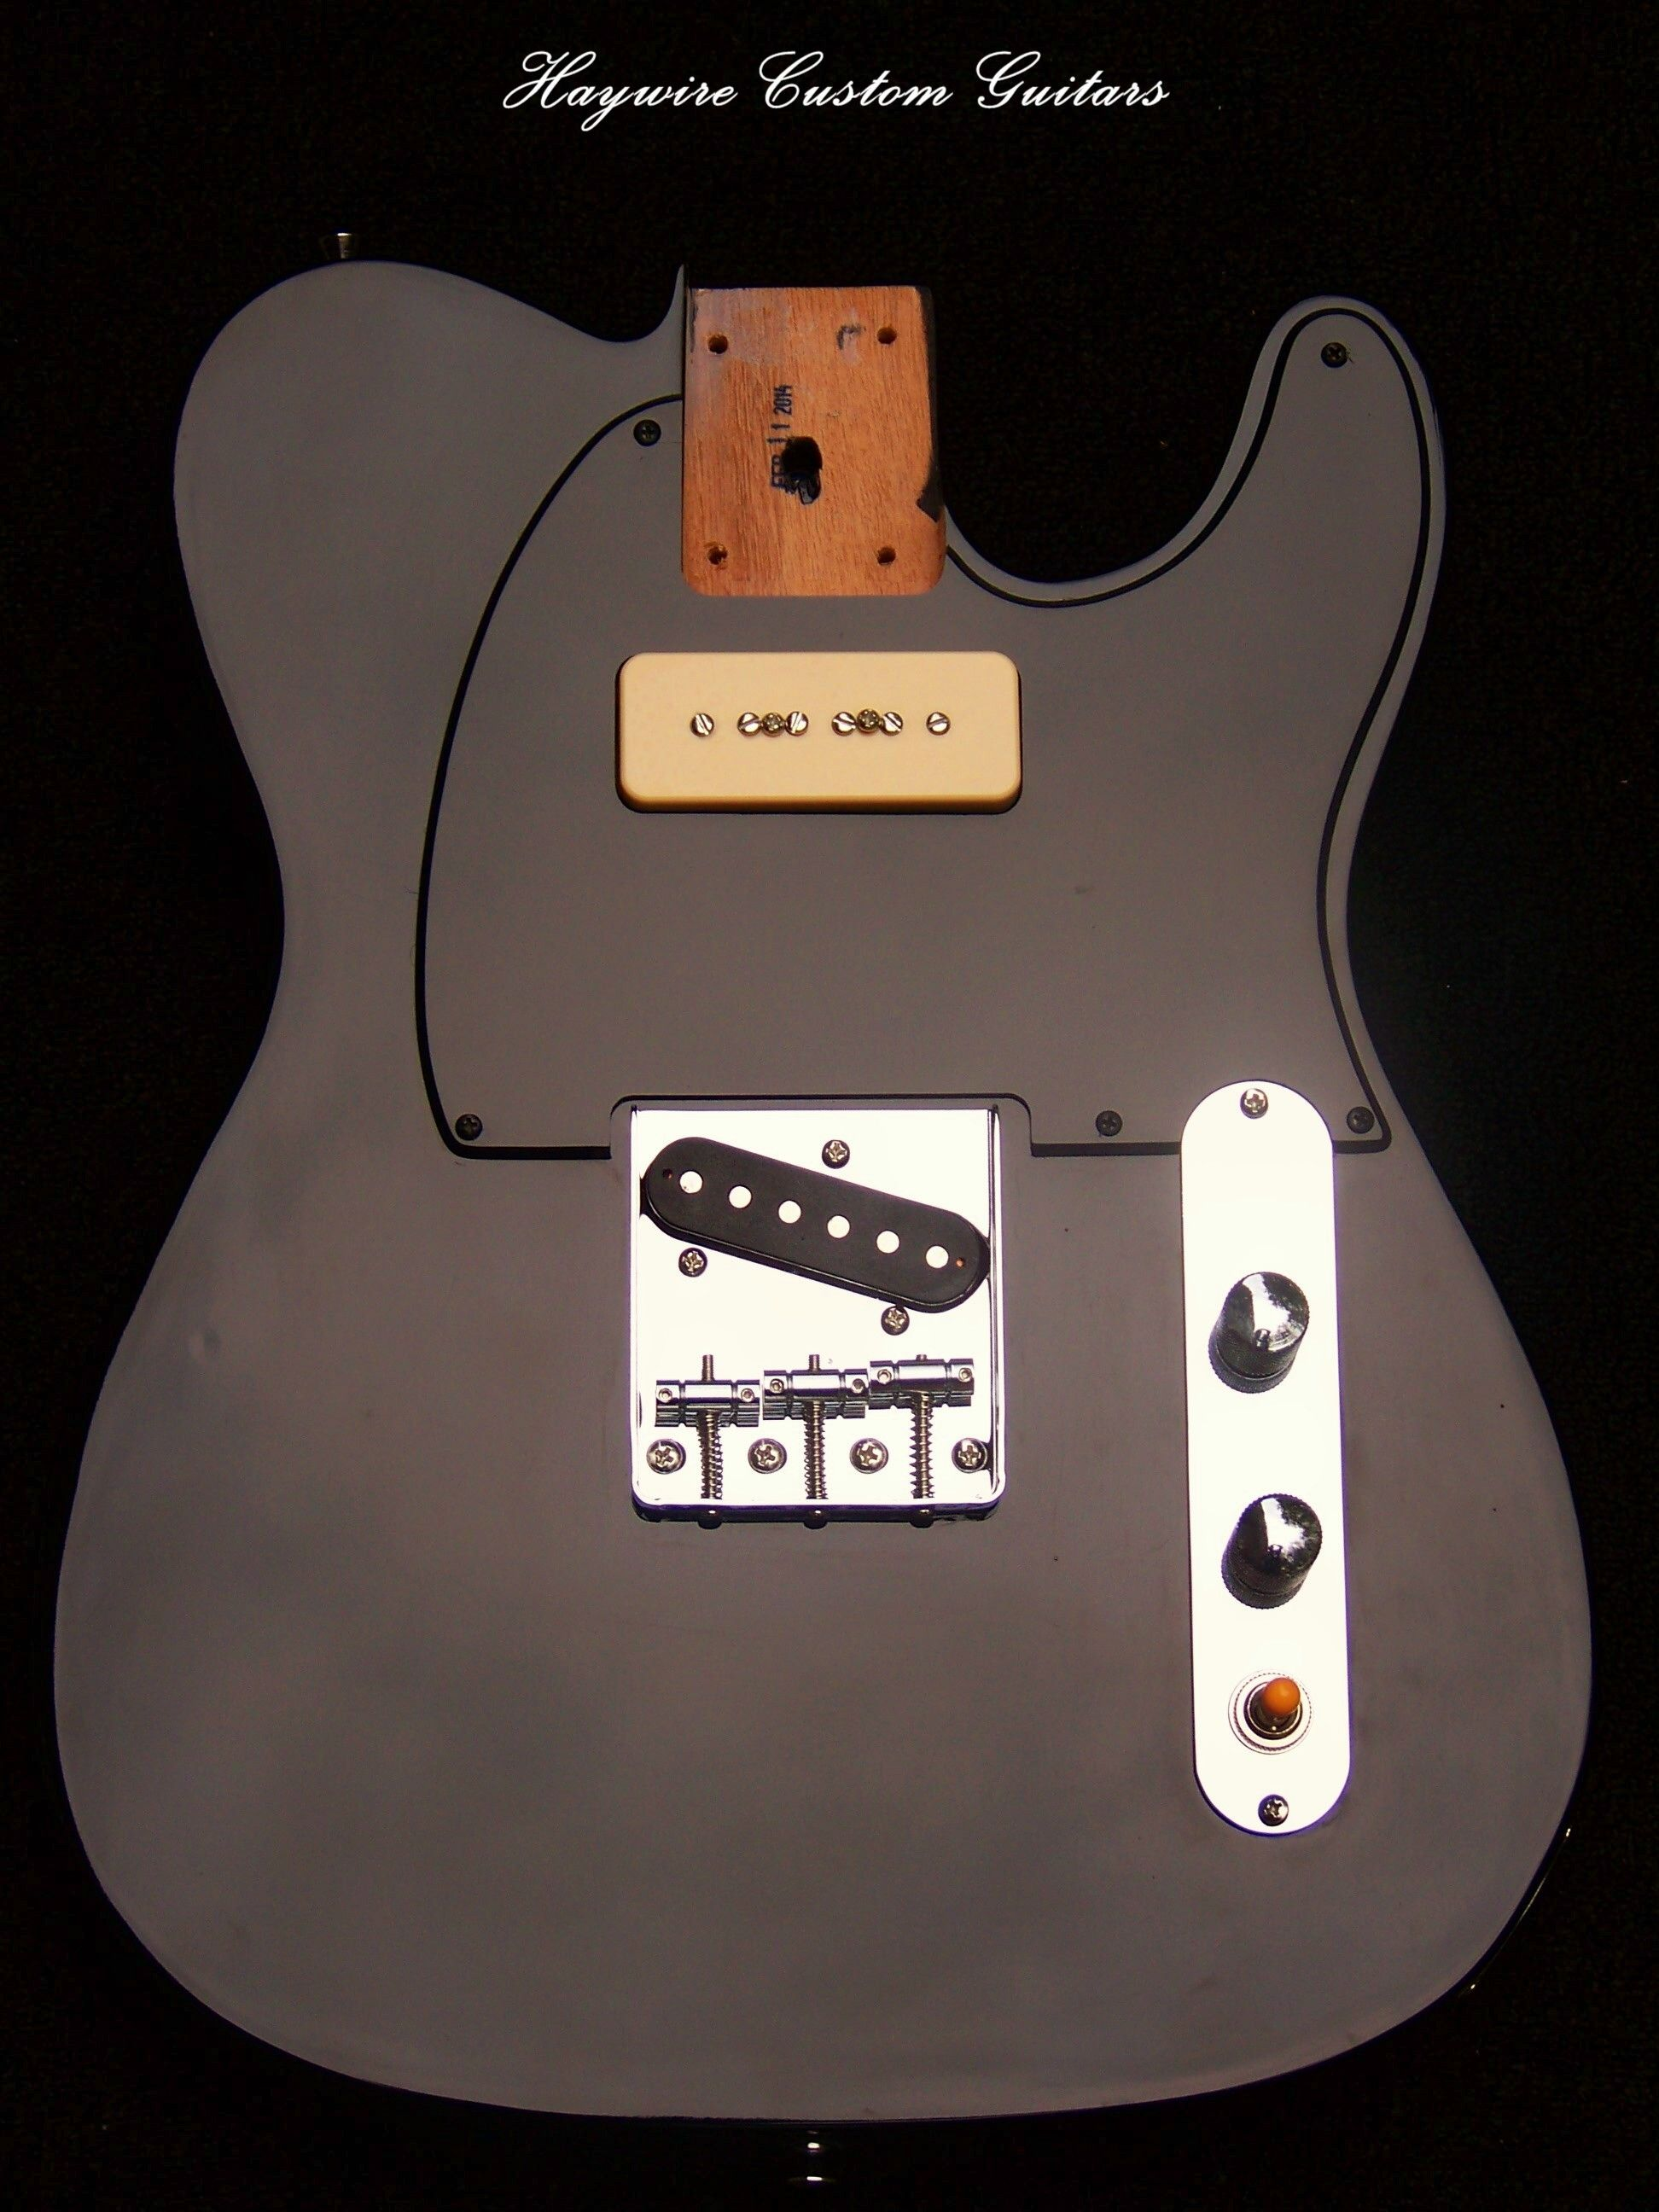 Haywire Custom Guitars Highly Recommended Buy Custom Guitars Guitar Telecaster Guitar